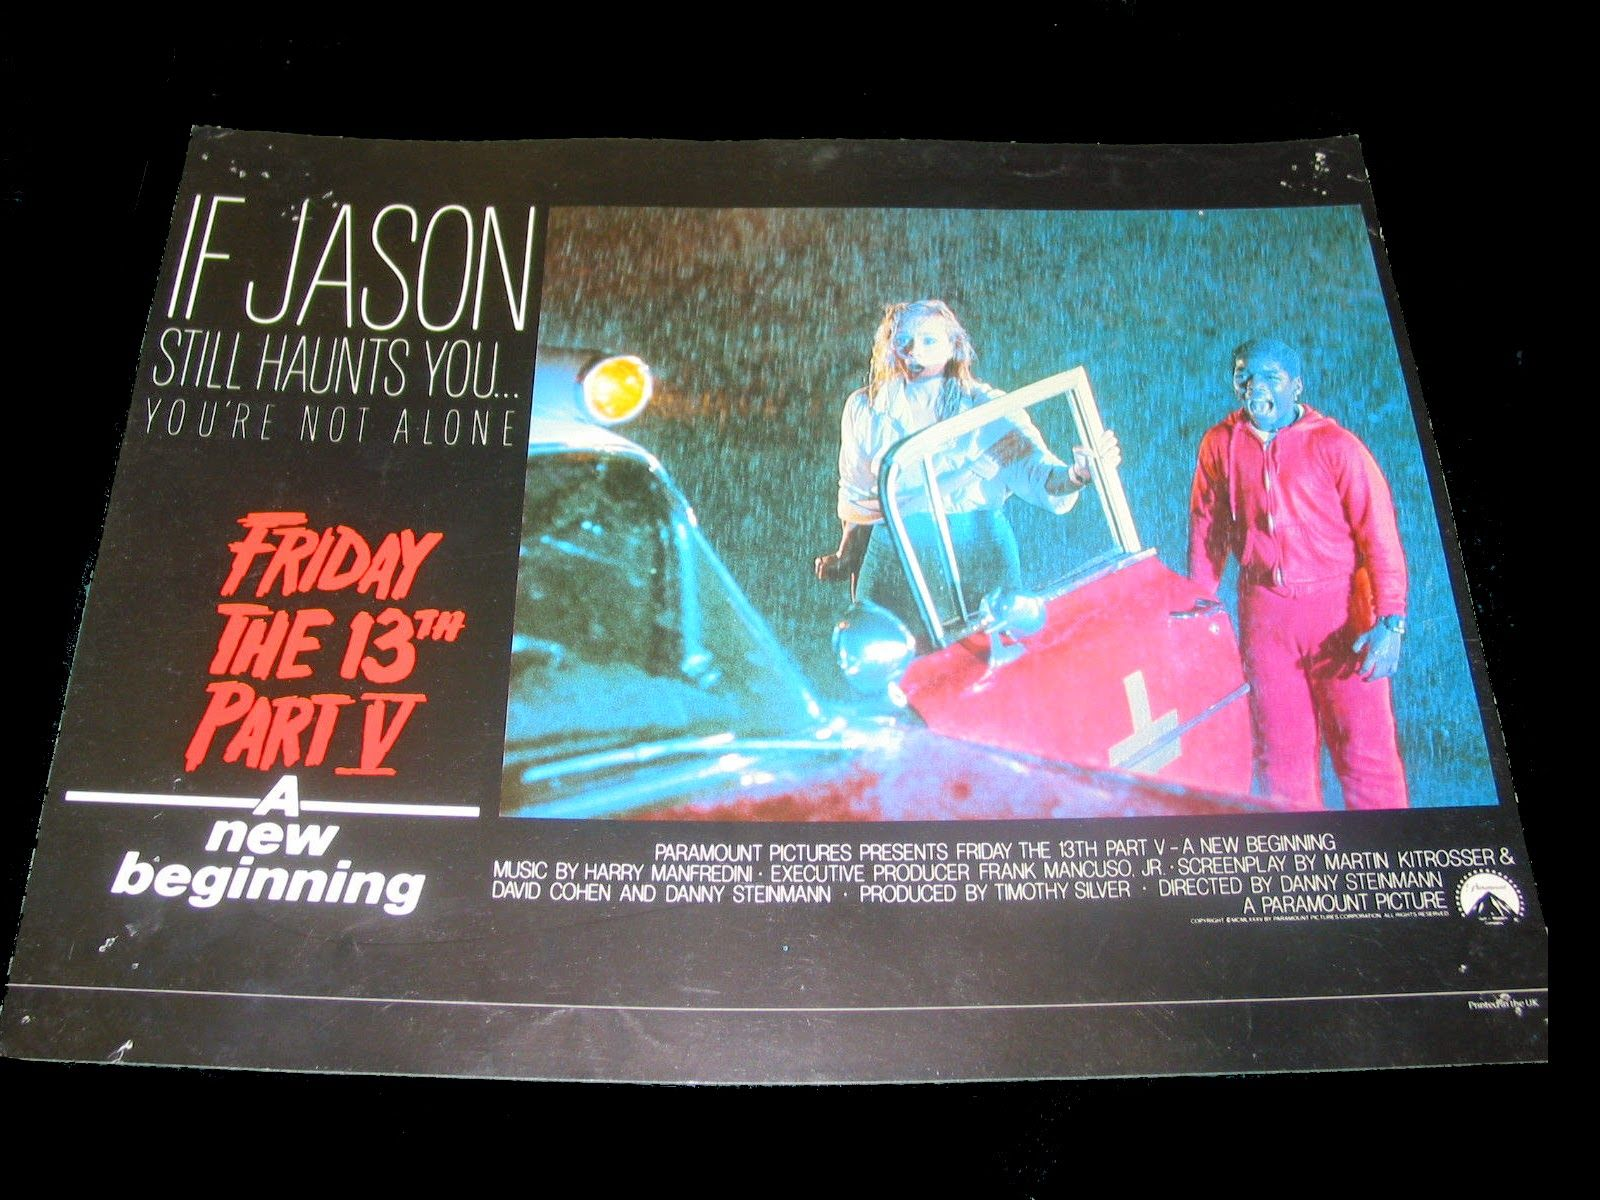 Friday the 13th Part V: A New Beginning (1985) UK lobby card